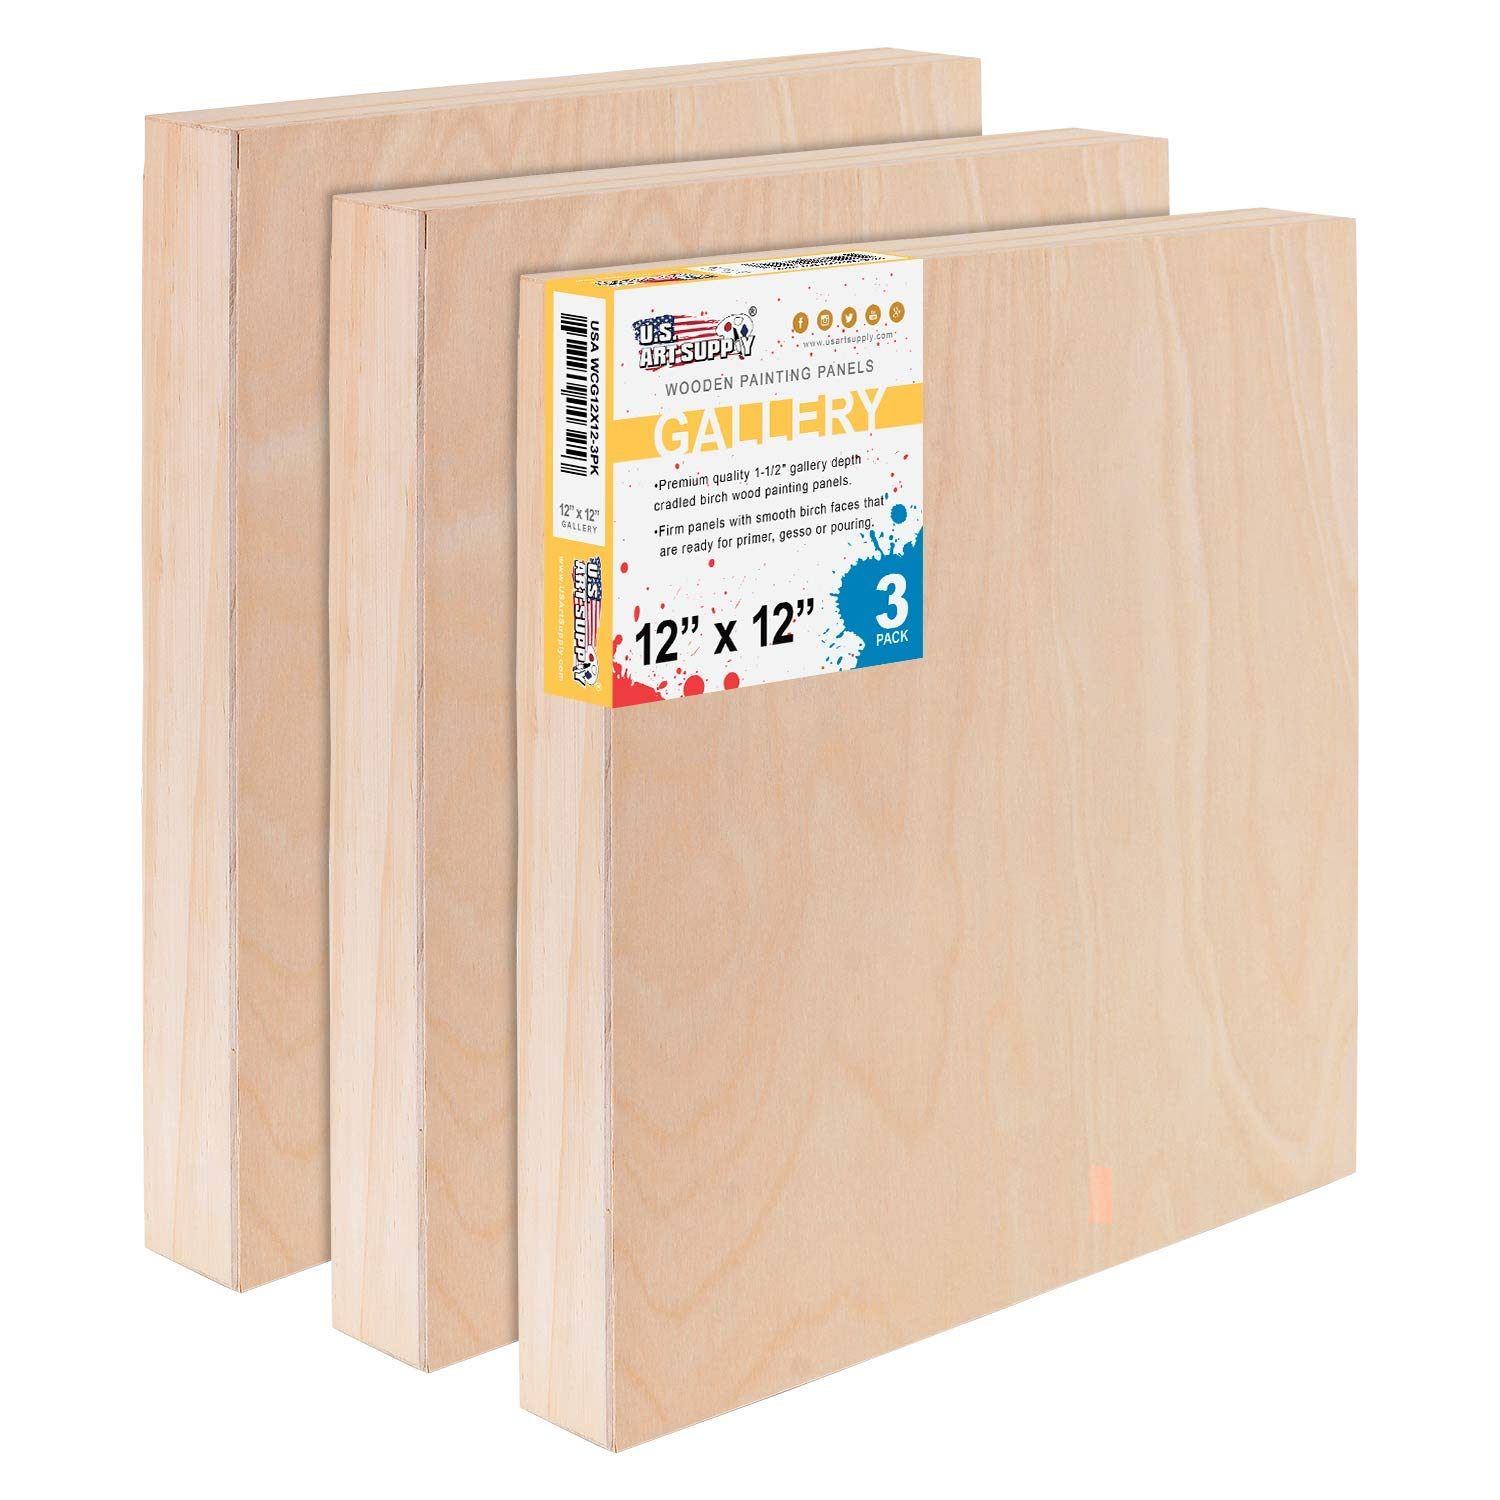 U.S. Art Supply 12'' x 12'' Birch Wood Paint Pouring Panel Boards, Gallery 1-1/2'' Deep Cradle (Pack of 3) - Artist Depth Wooden Wall Canvases - Painting Mixed-Media Craft, Acrylic, Oil, Encaustic by US Art Supply